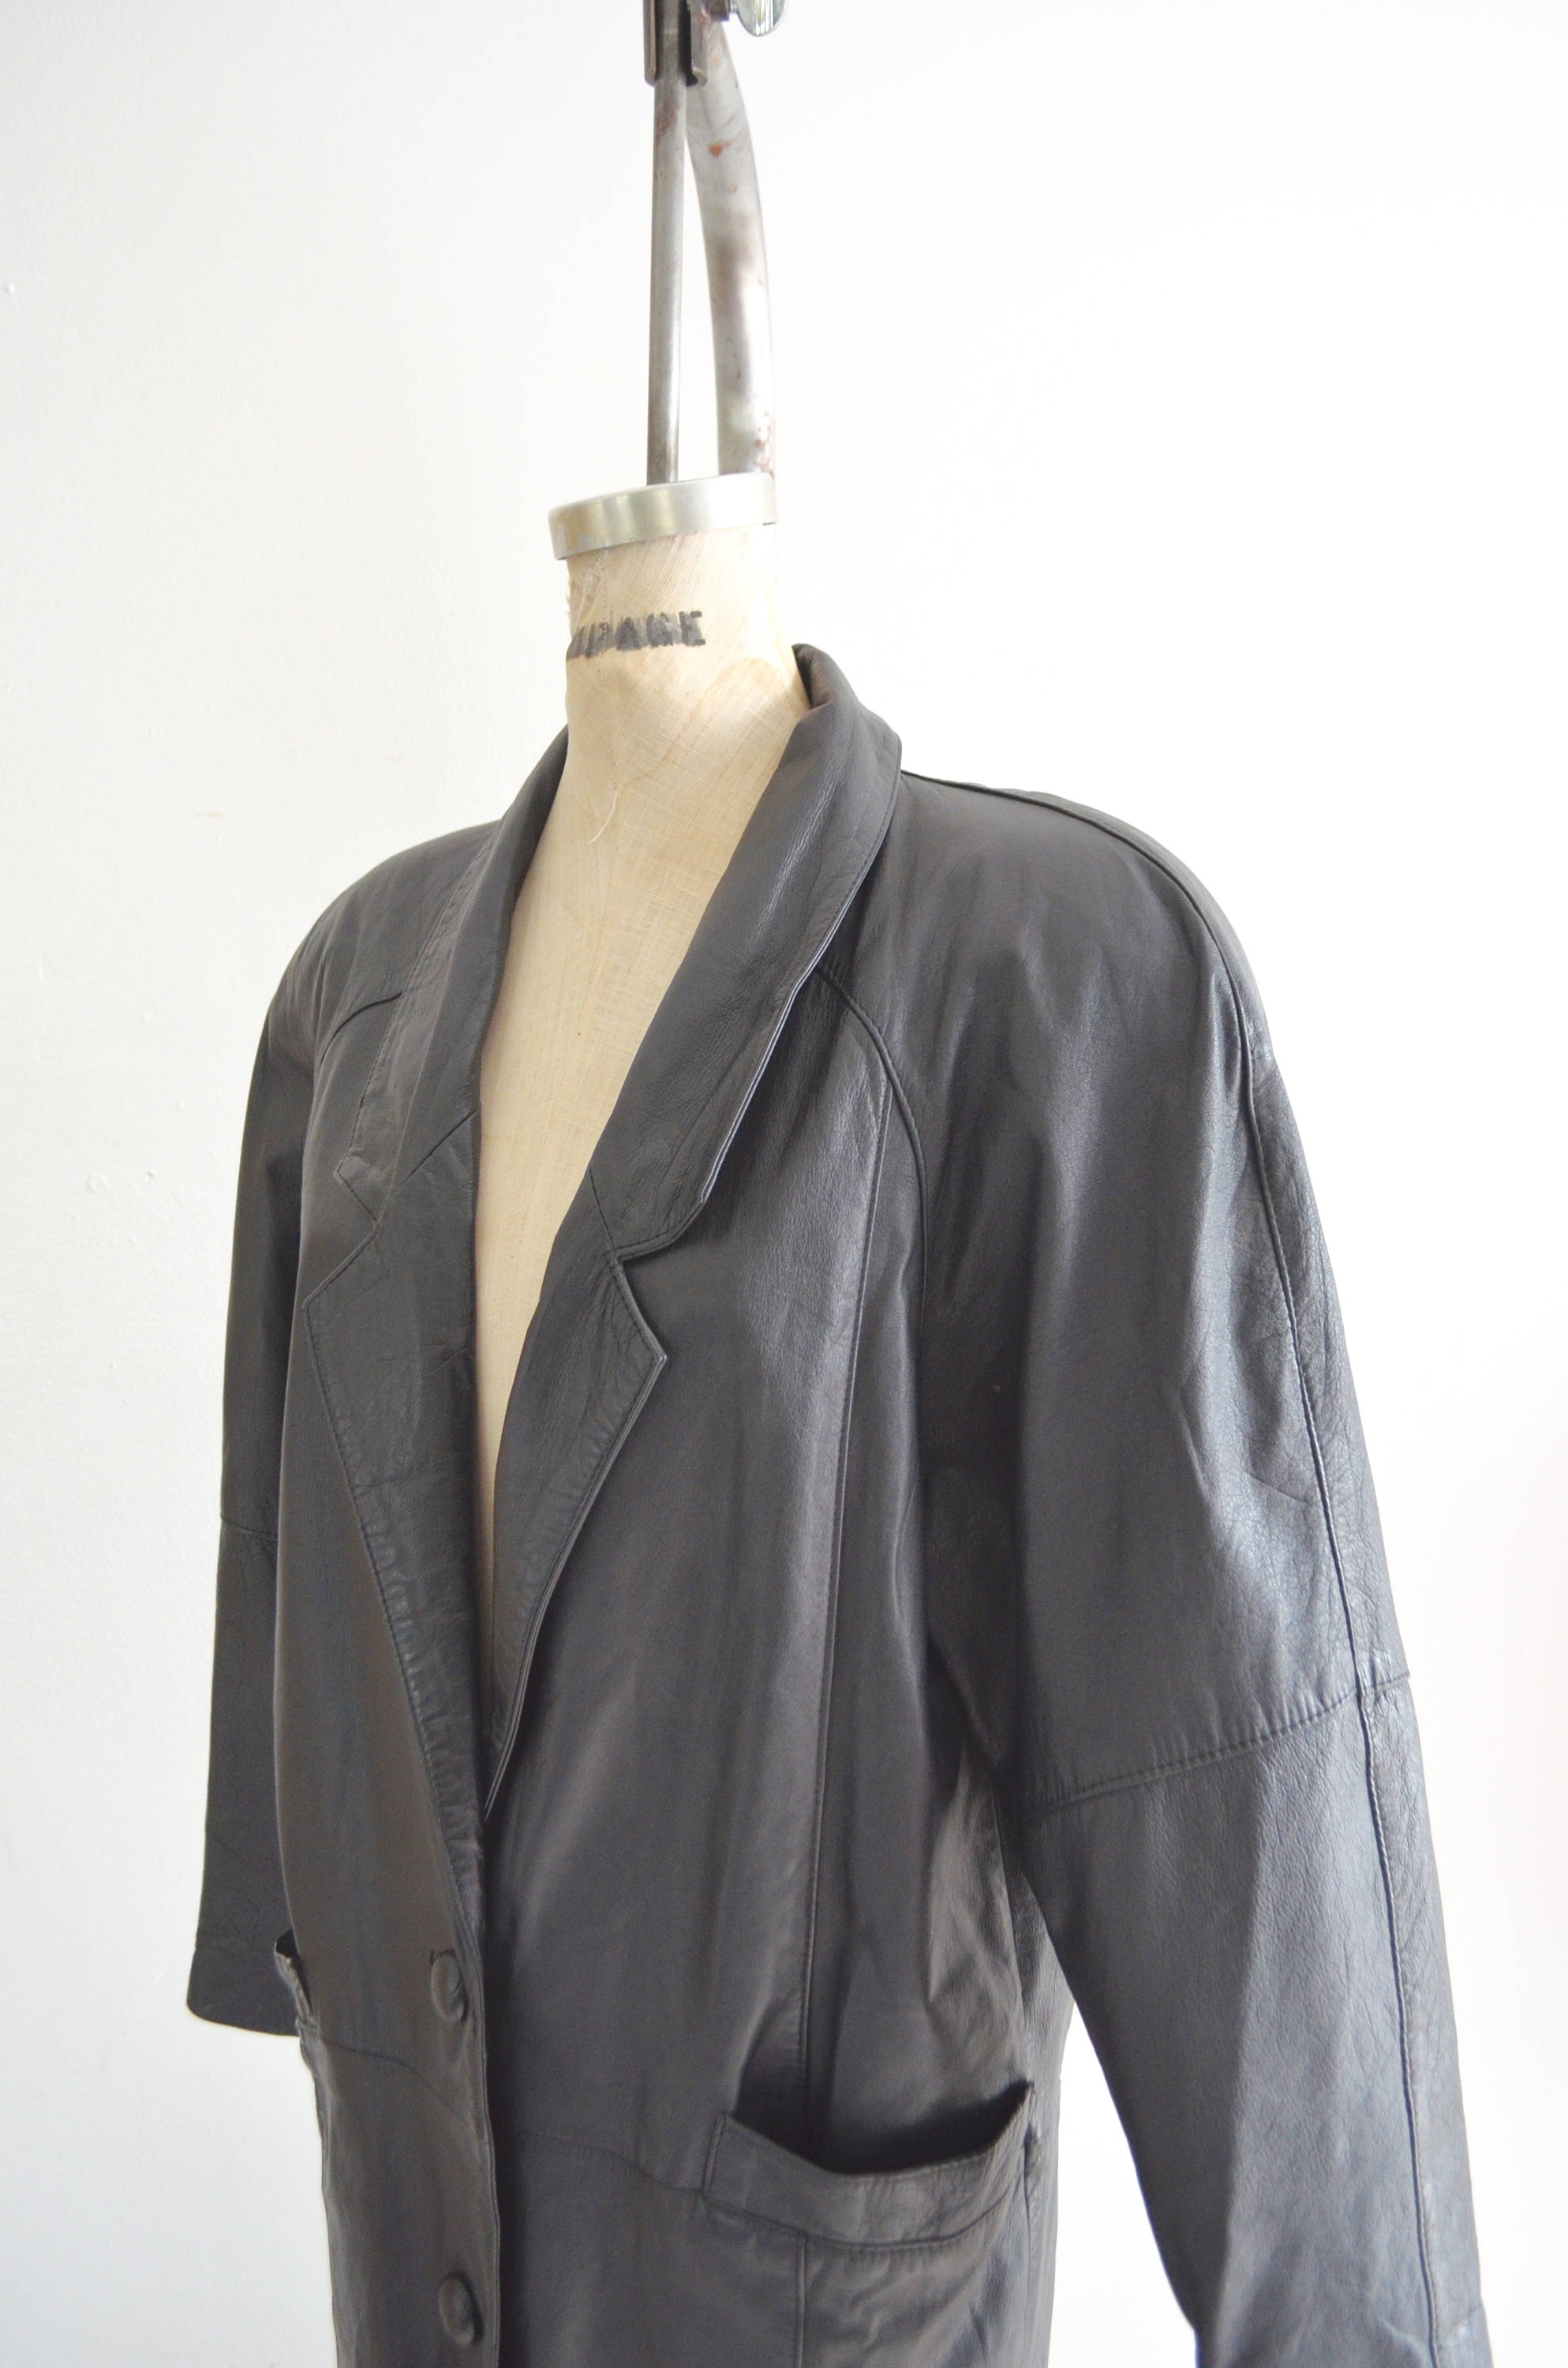 Black Leather Long Coat Outwear Trench Coat Jacket Raincoat 1980S Style Fall